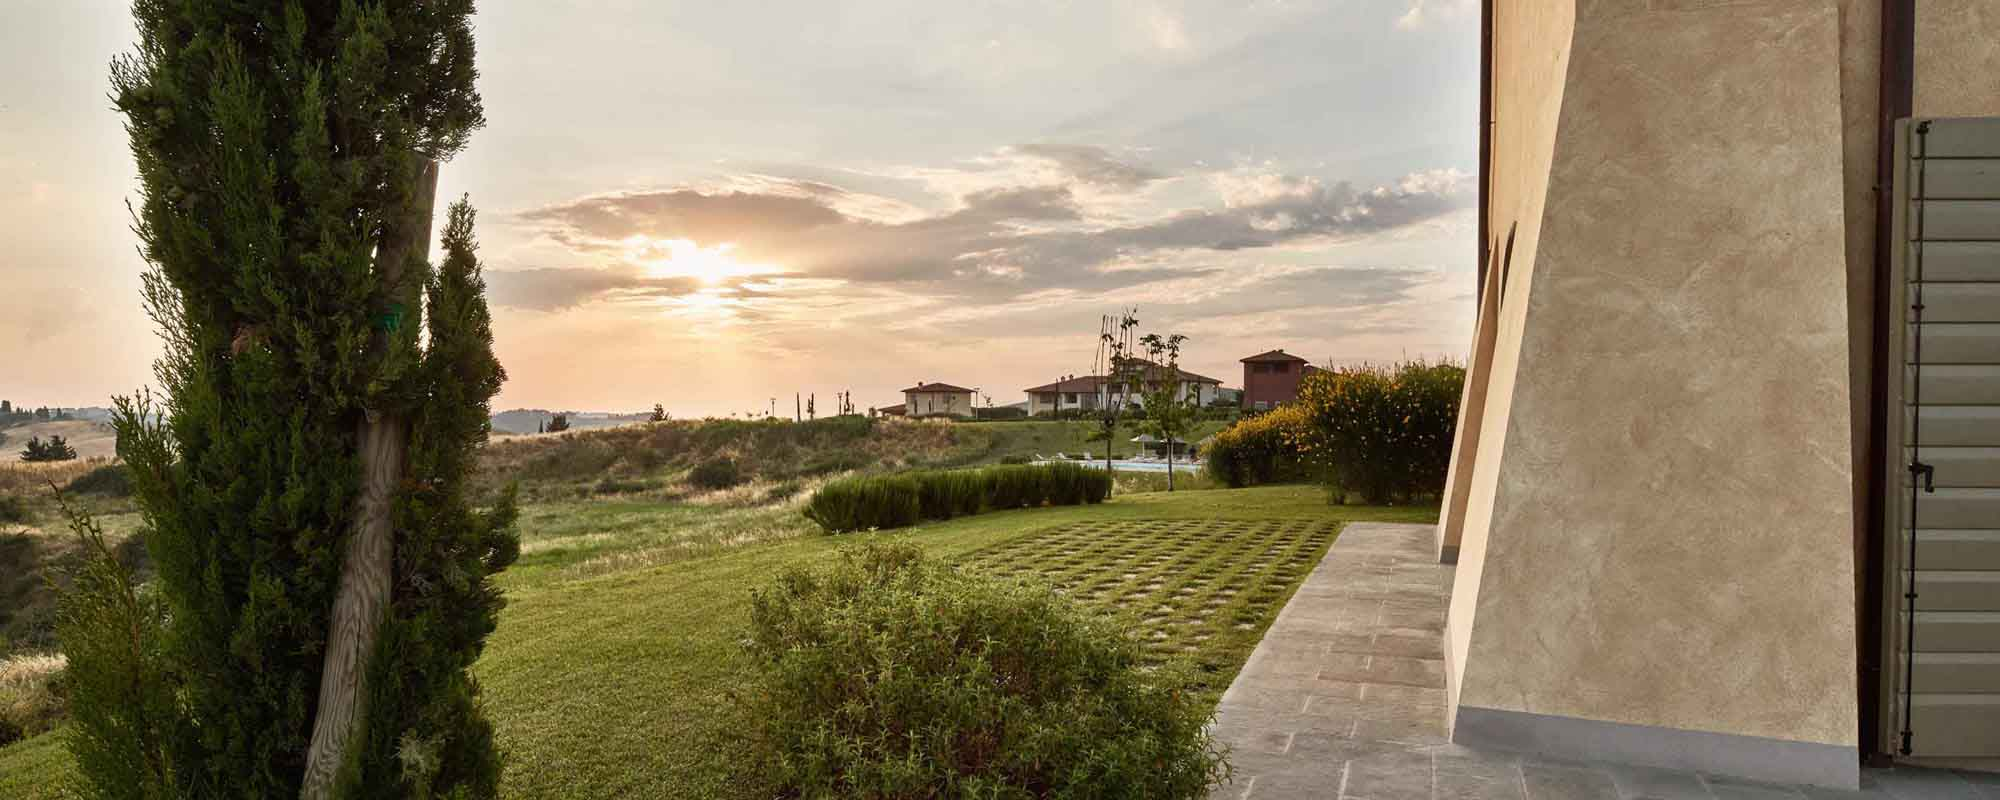 View from Villa Belvedere 4B - property for sale in Castelfalfi, Tuscany